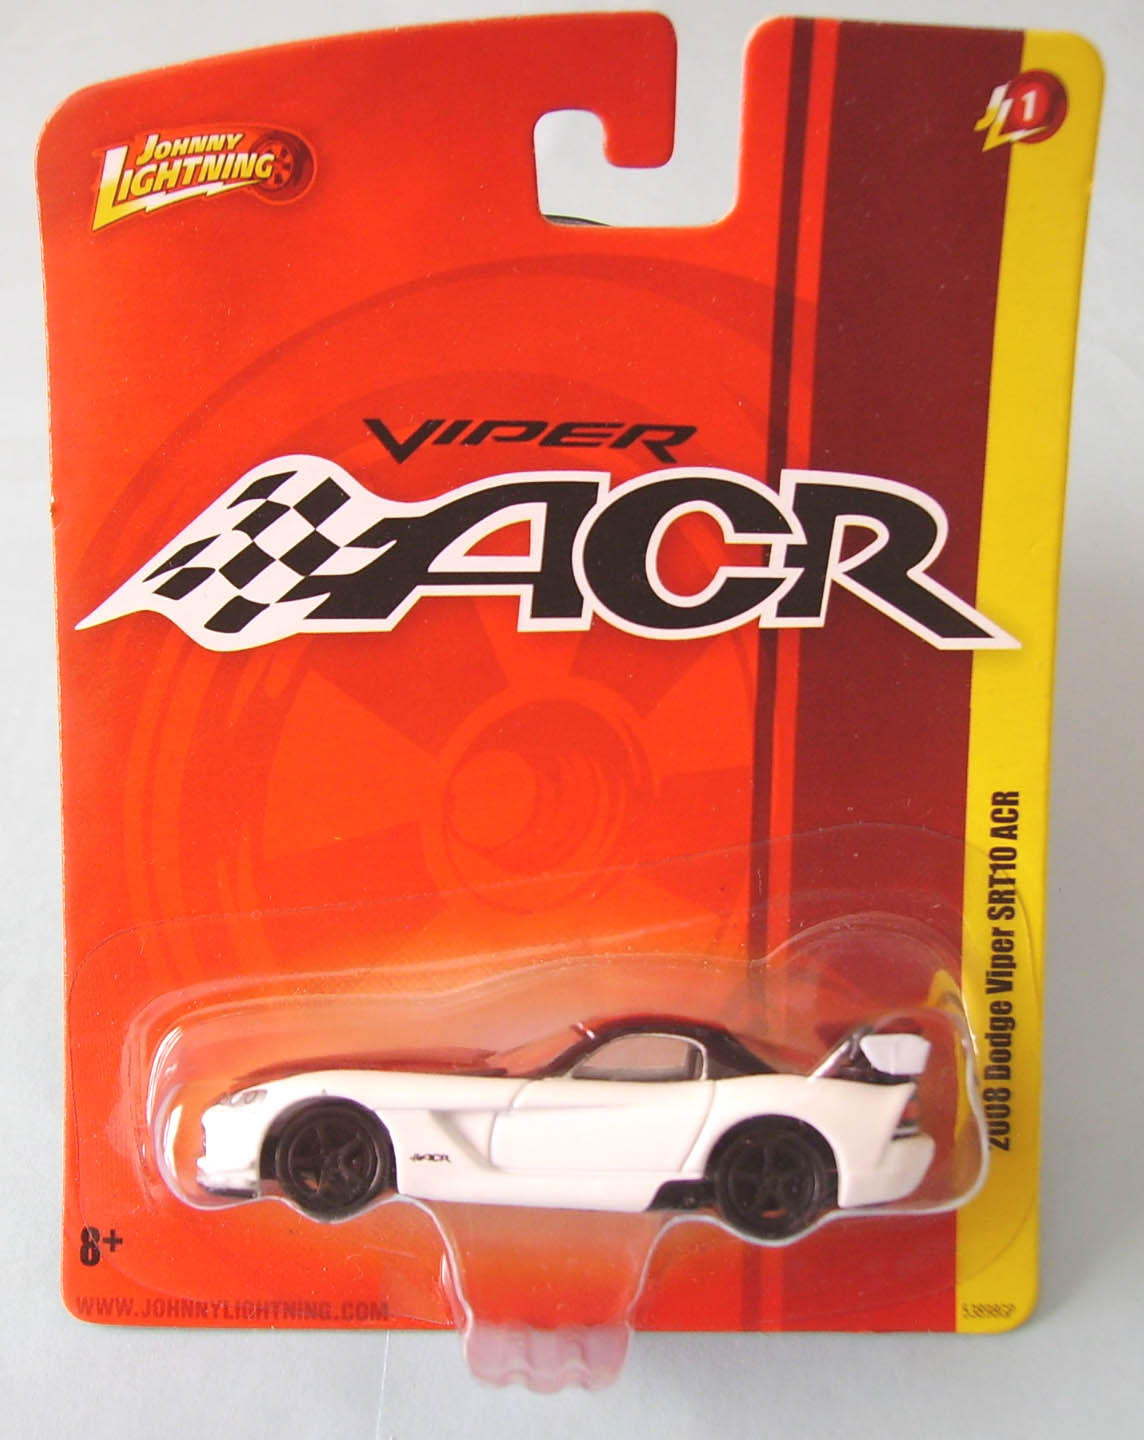 Johnny Lightning Red Card 40 Years 2008 Dodge Viper SRT10 ACR Black Release 7